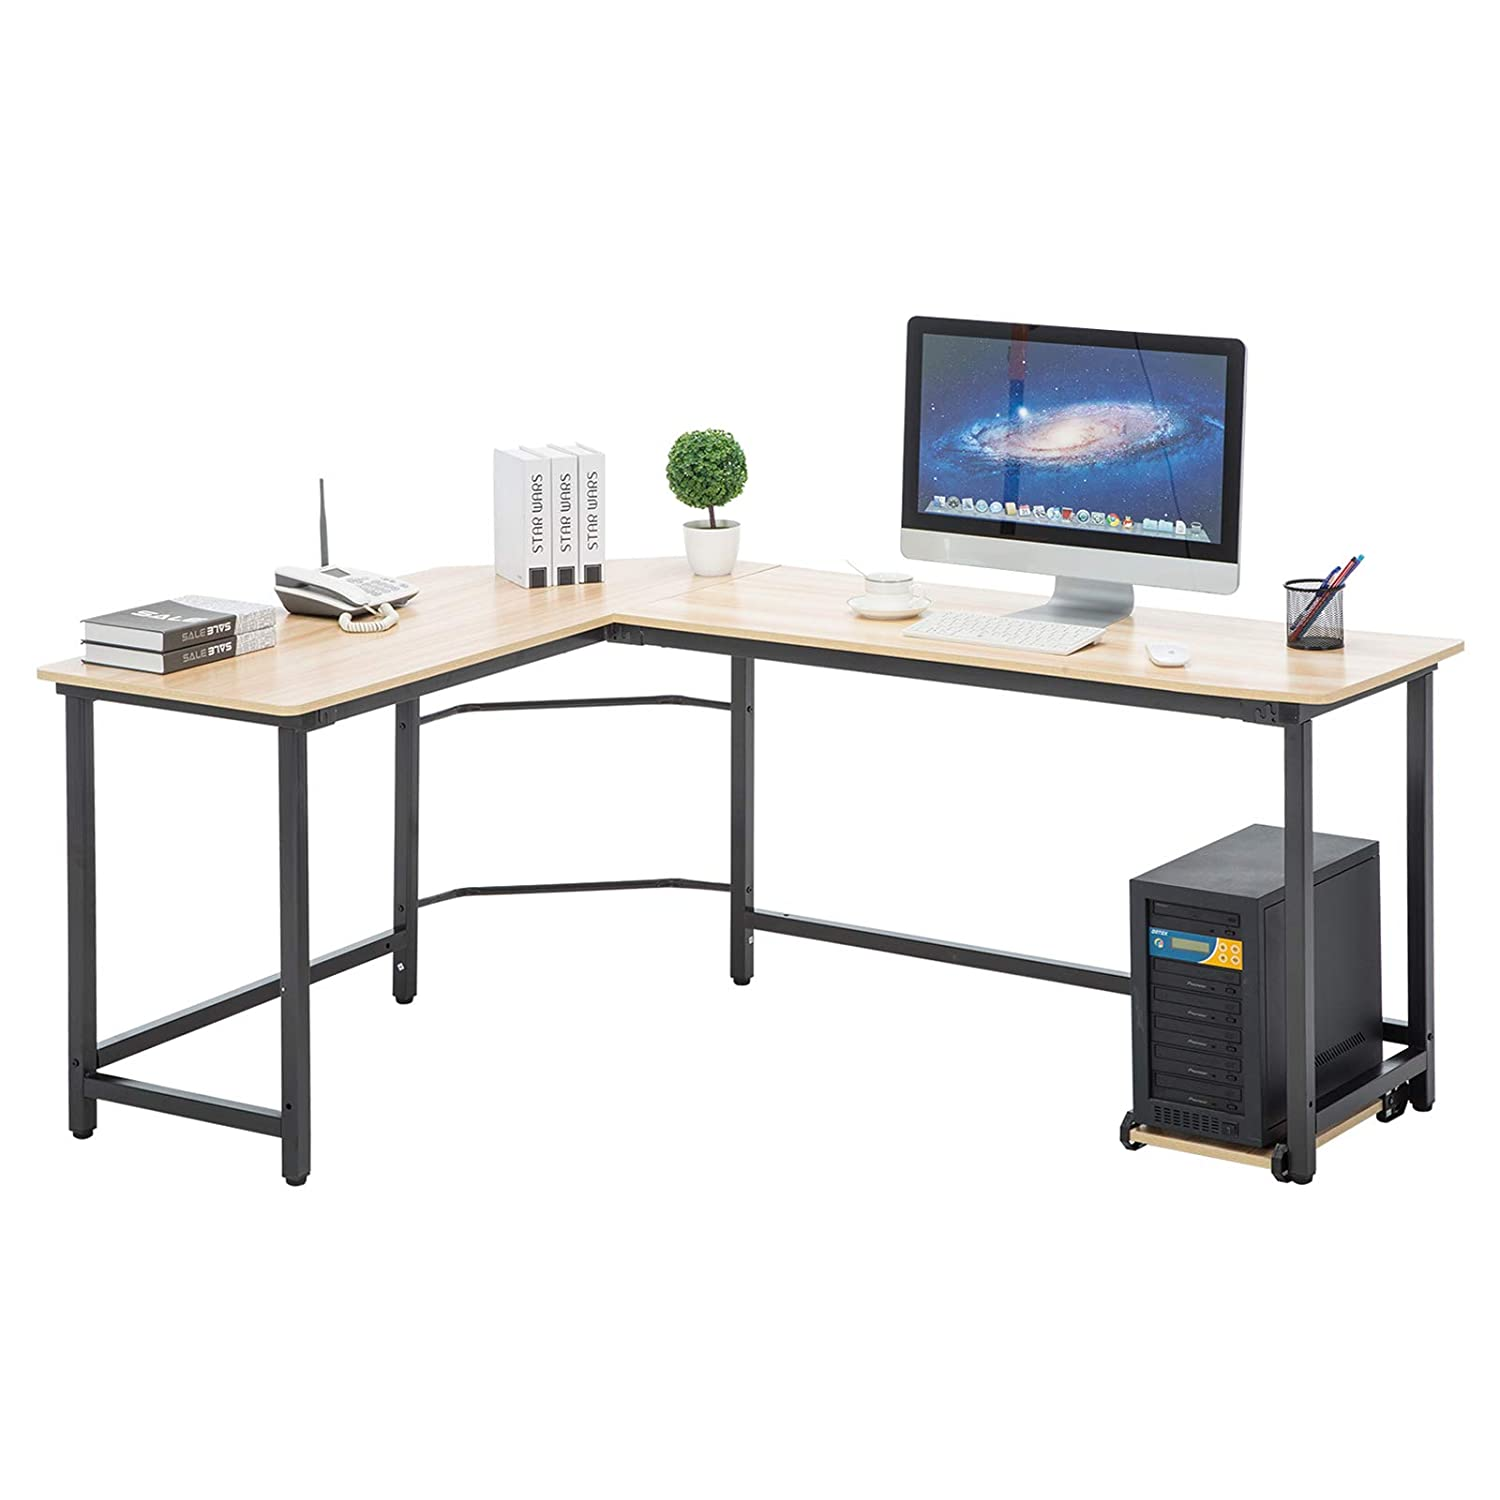 Mecor L-Shaped Desk, Modern Corner Computer Desk Table W/Free Cup Stand for  Home Office, Wood Top & Metal Frame, Beige